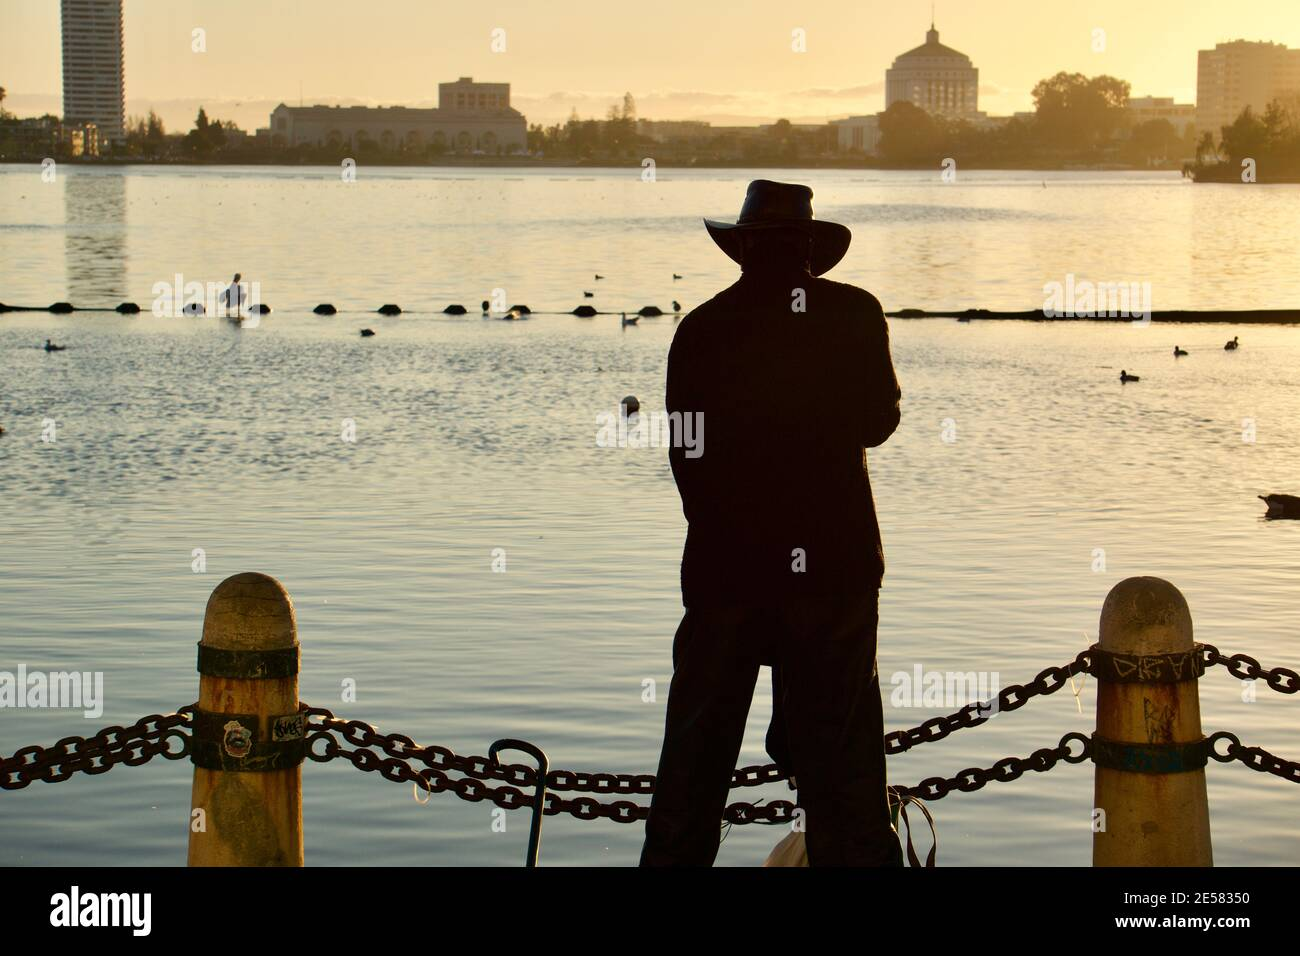 Silhouette of man standing in front of Lake Merritt at sunset in front of chain links, Oakland, California, USA Stock Photo